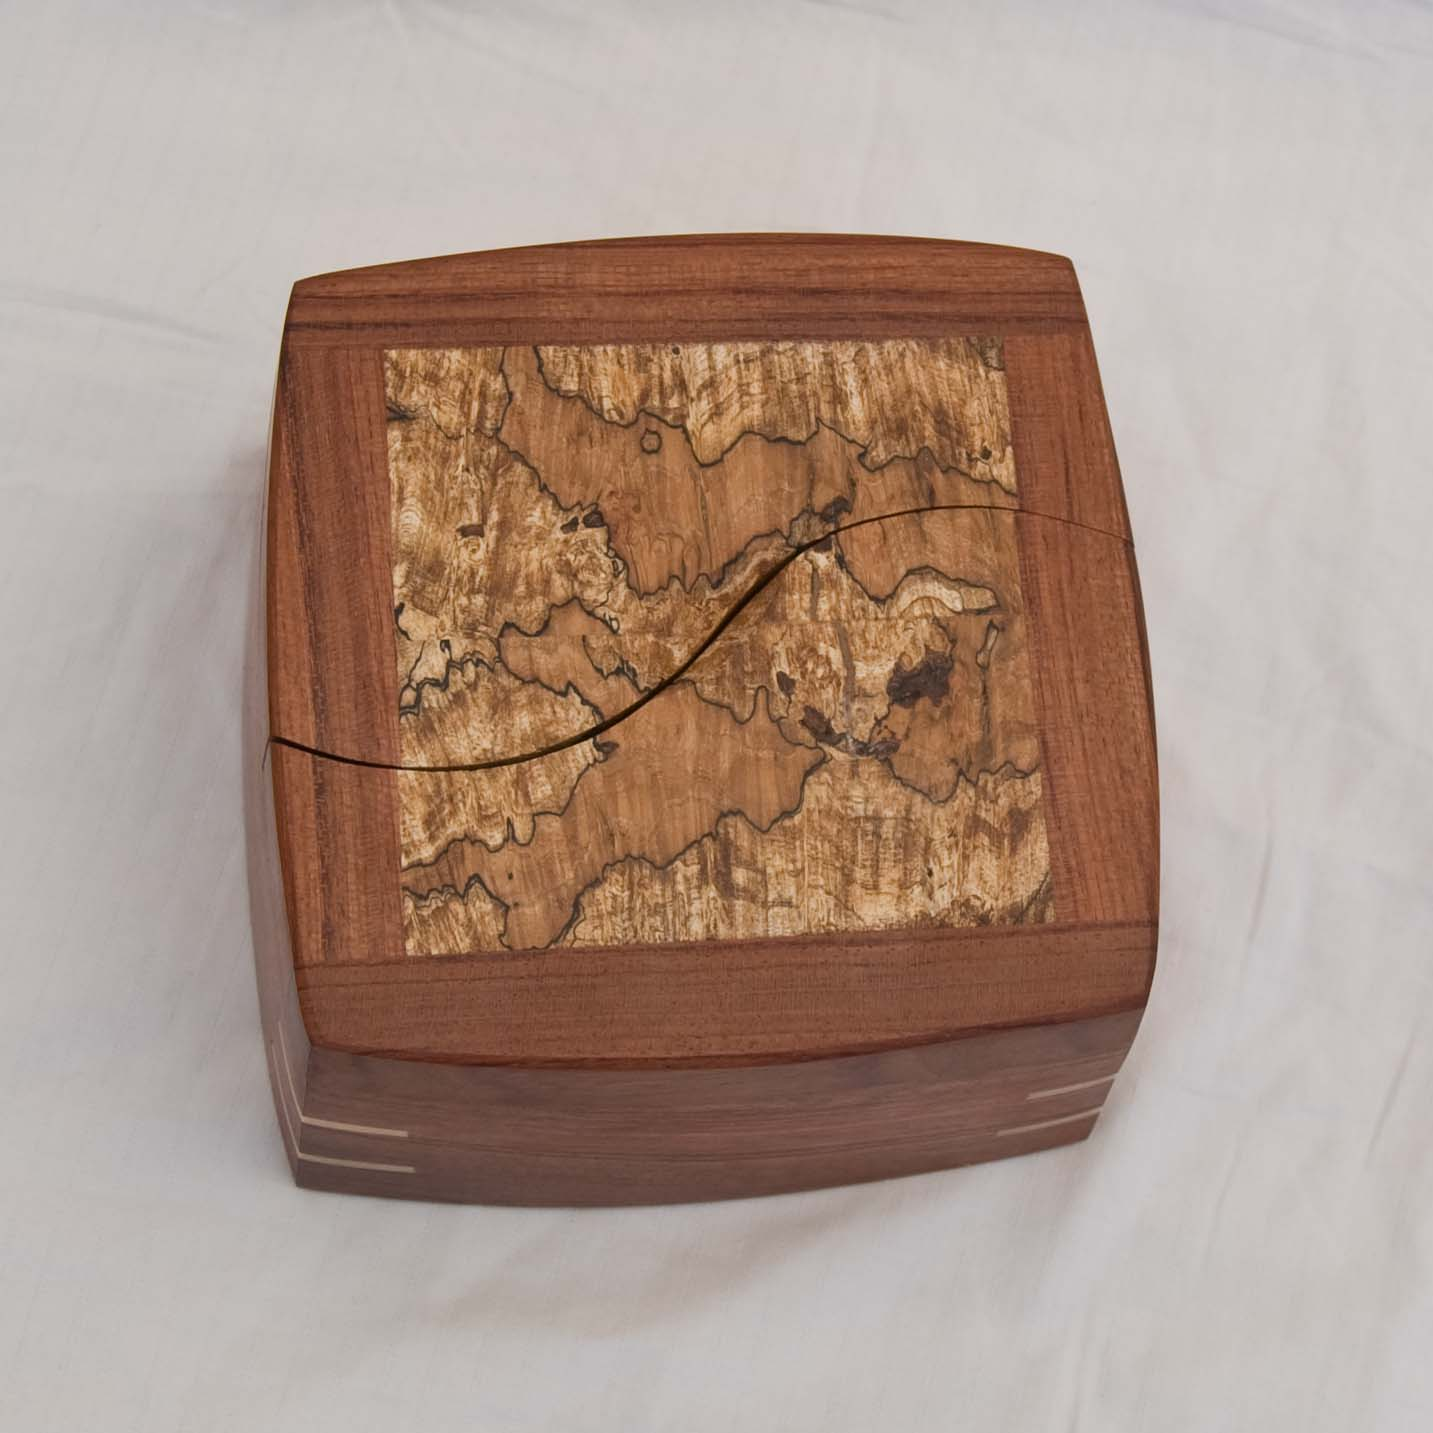 one of my handcrafted decorative trinket boxes with lids that swivel open - Decorative Boxes With Lids